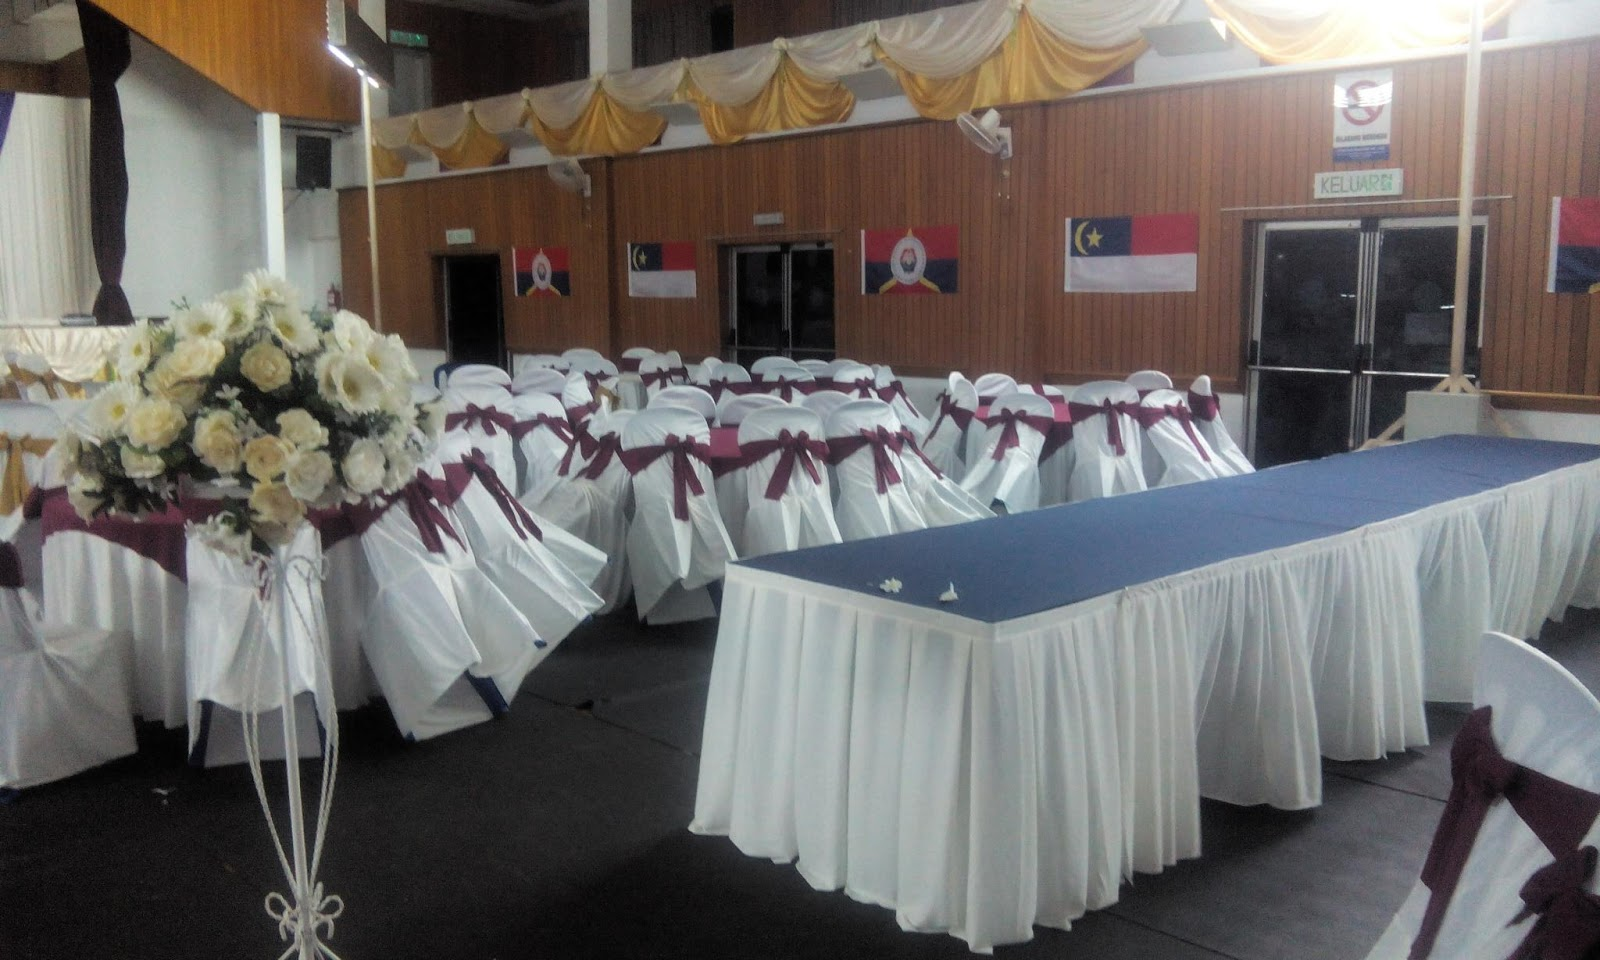 banquet chair covers malaysia duncan phyfe dining chairs sarung kerusi murah cover at low price de hati